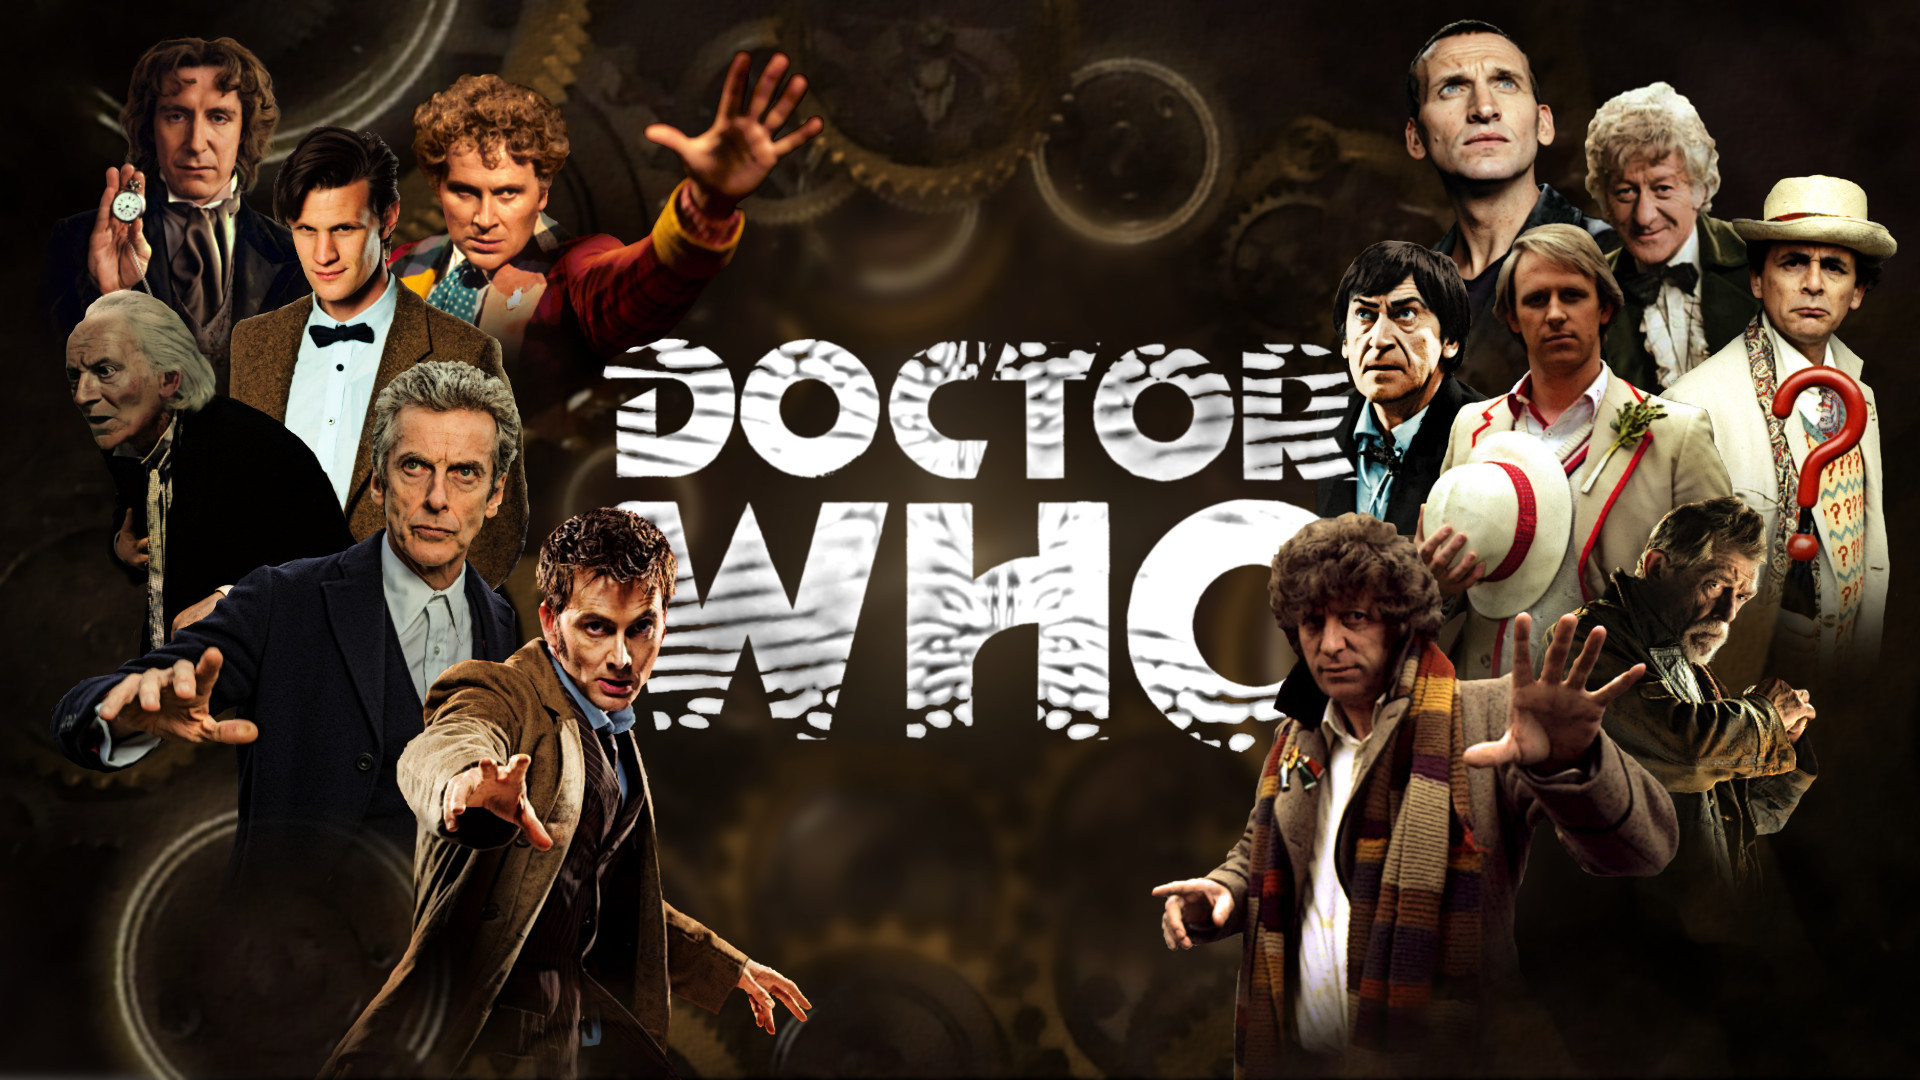 1920x1080 Doctor Who Ultimate Poster 13 Regenerations